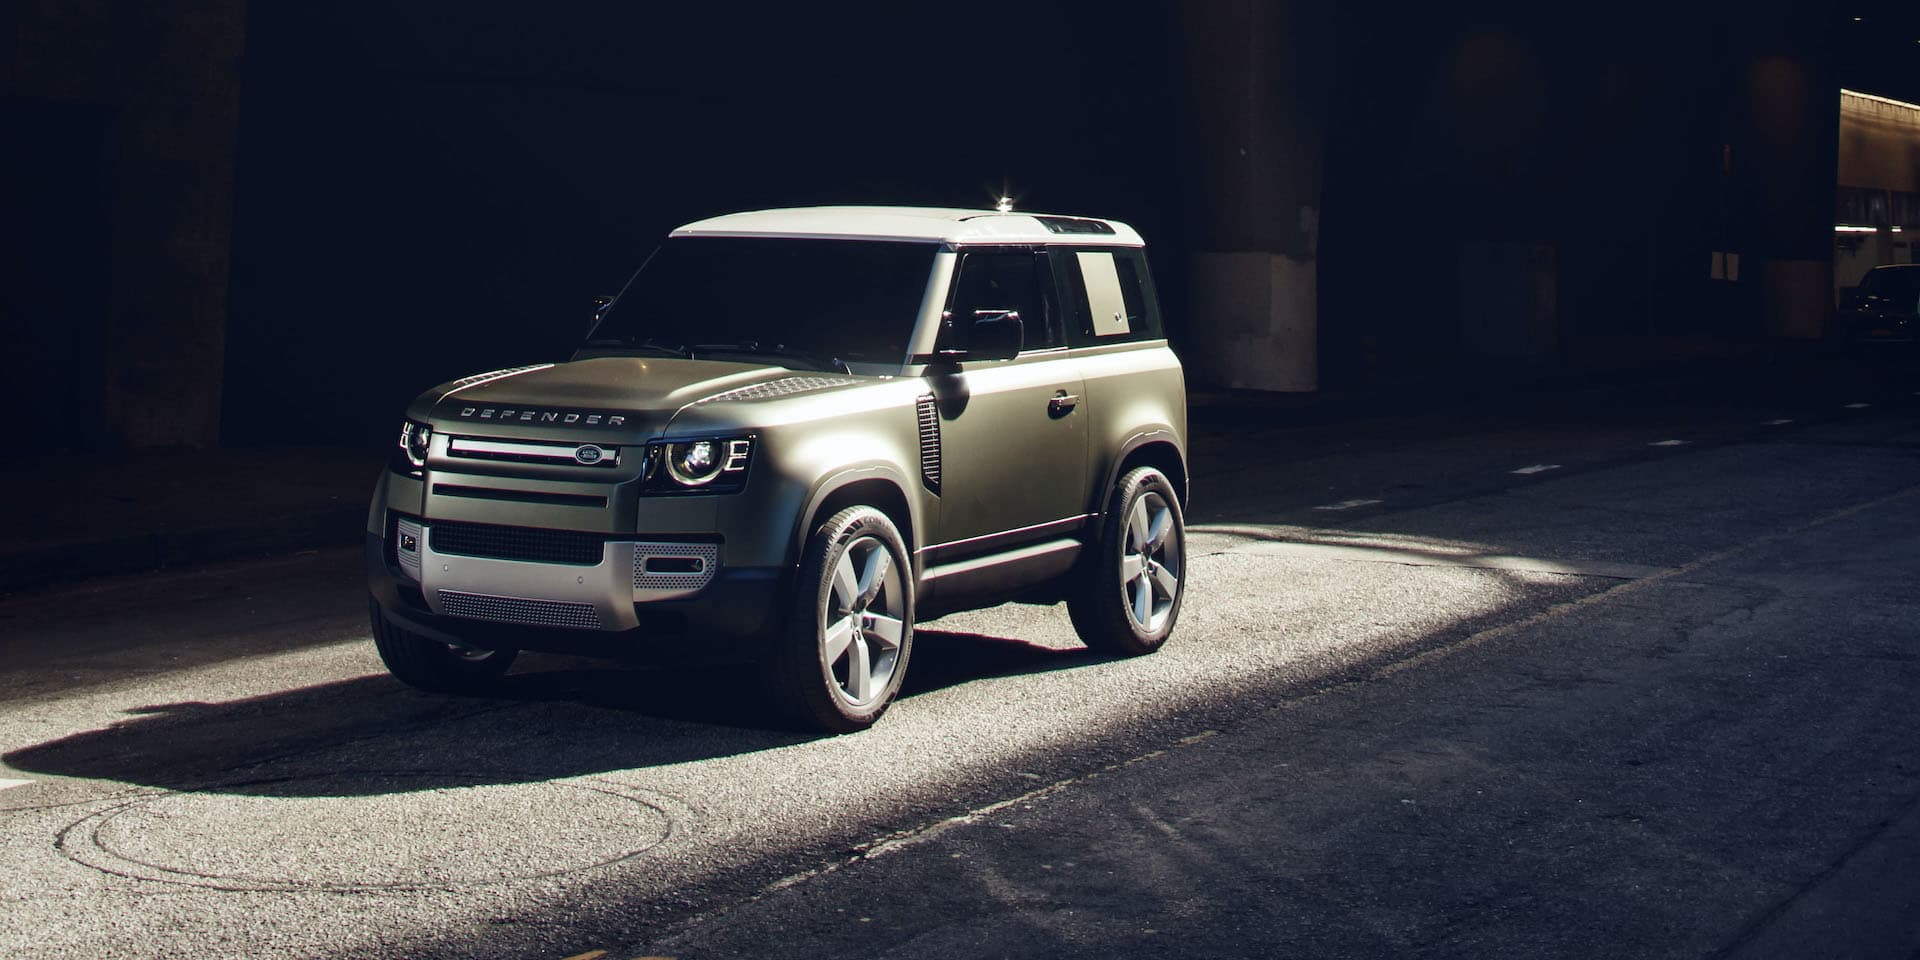 2020 Land Rover Defender 90 | The Car Expert